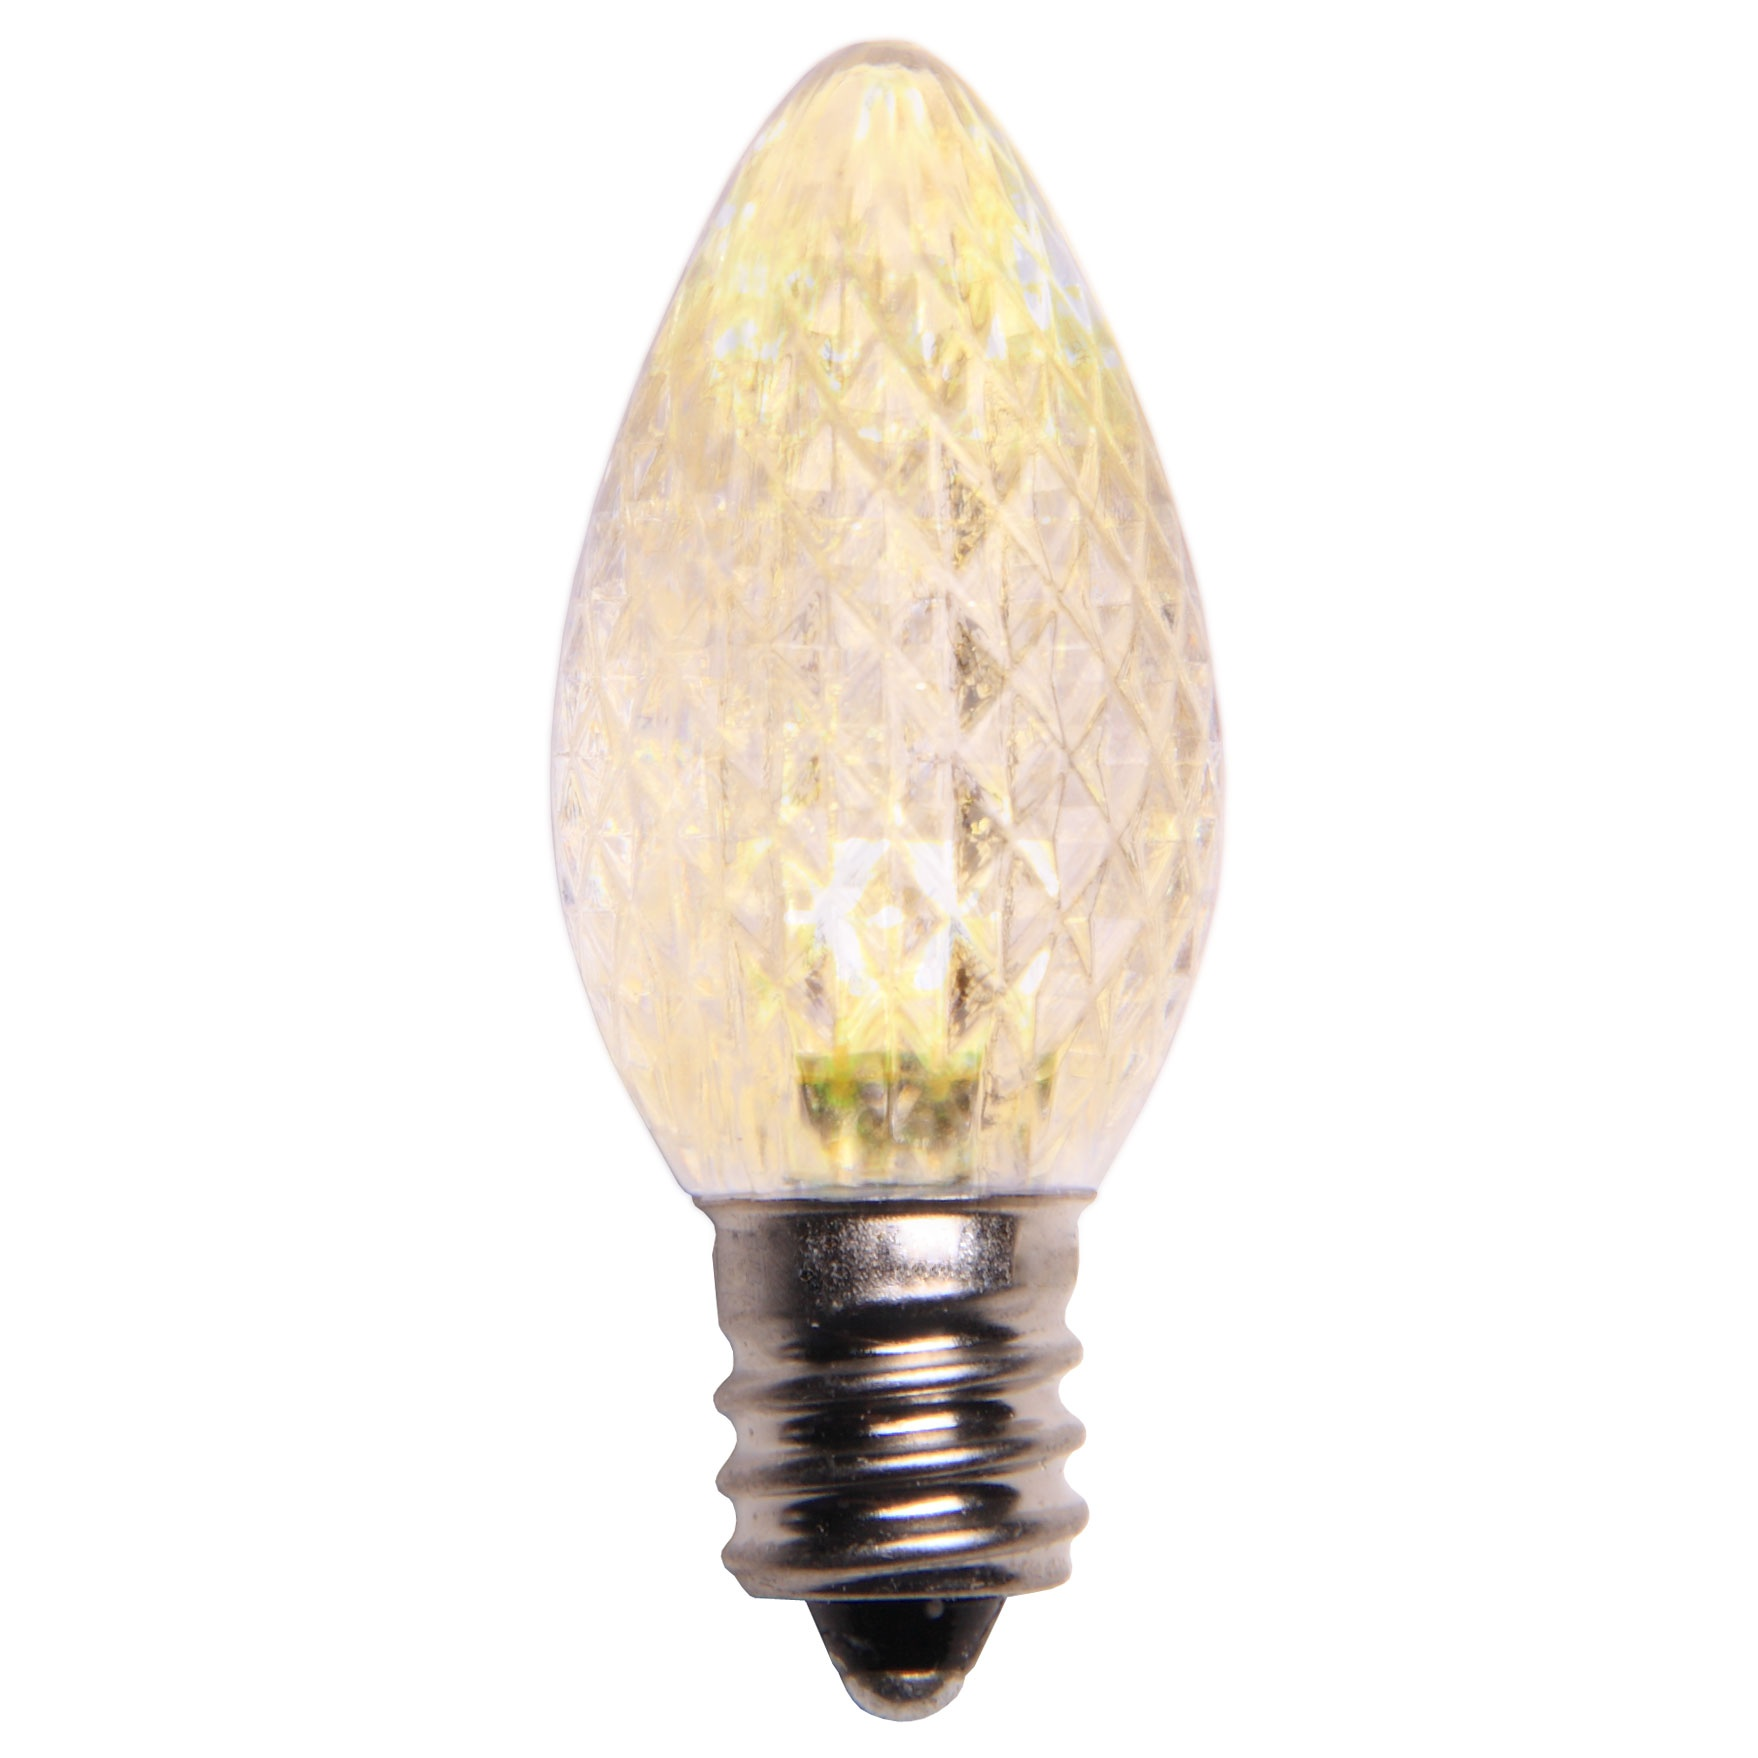 C7 LED Warm White Christmas Bulb